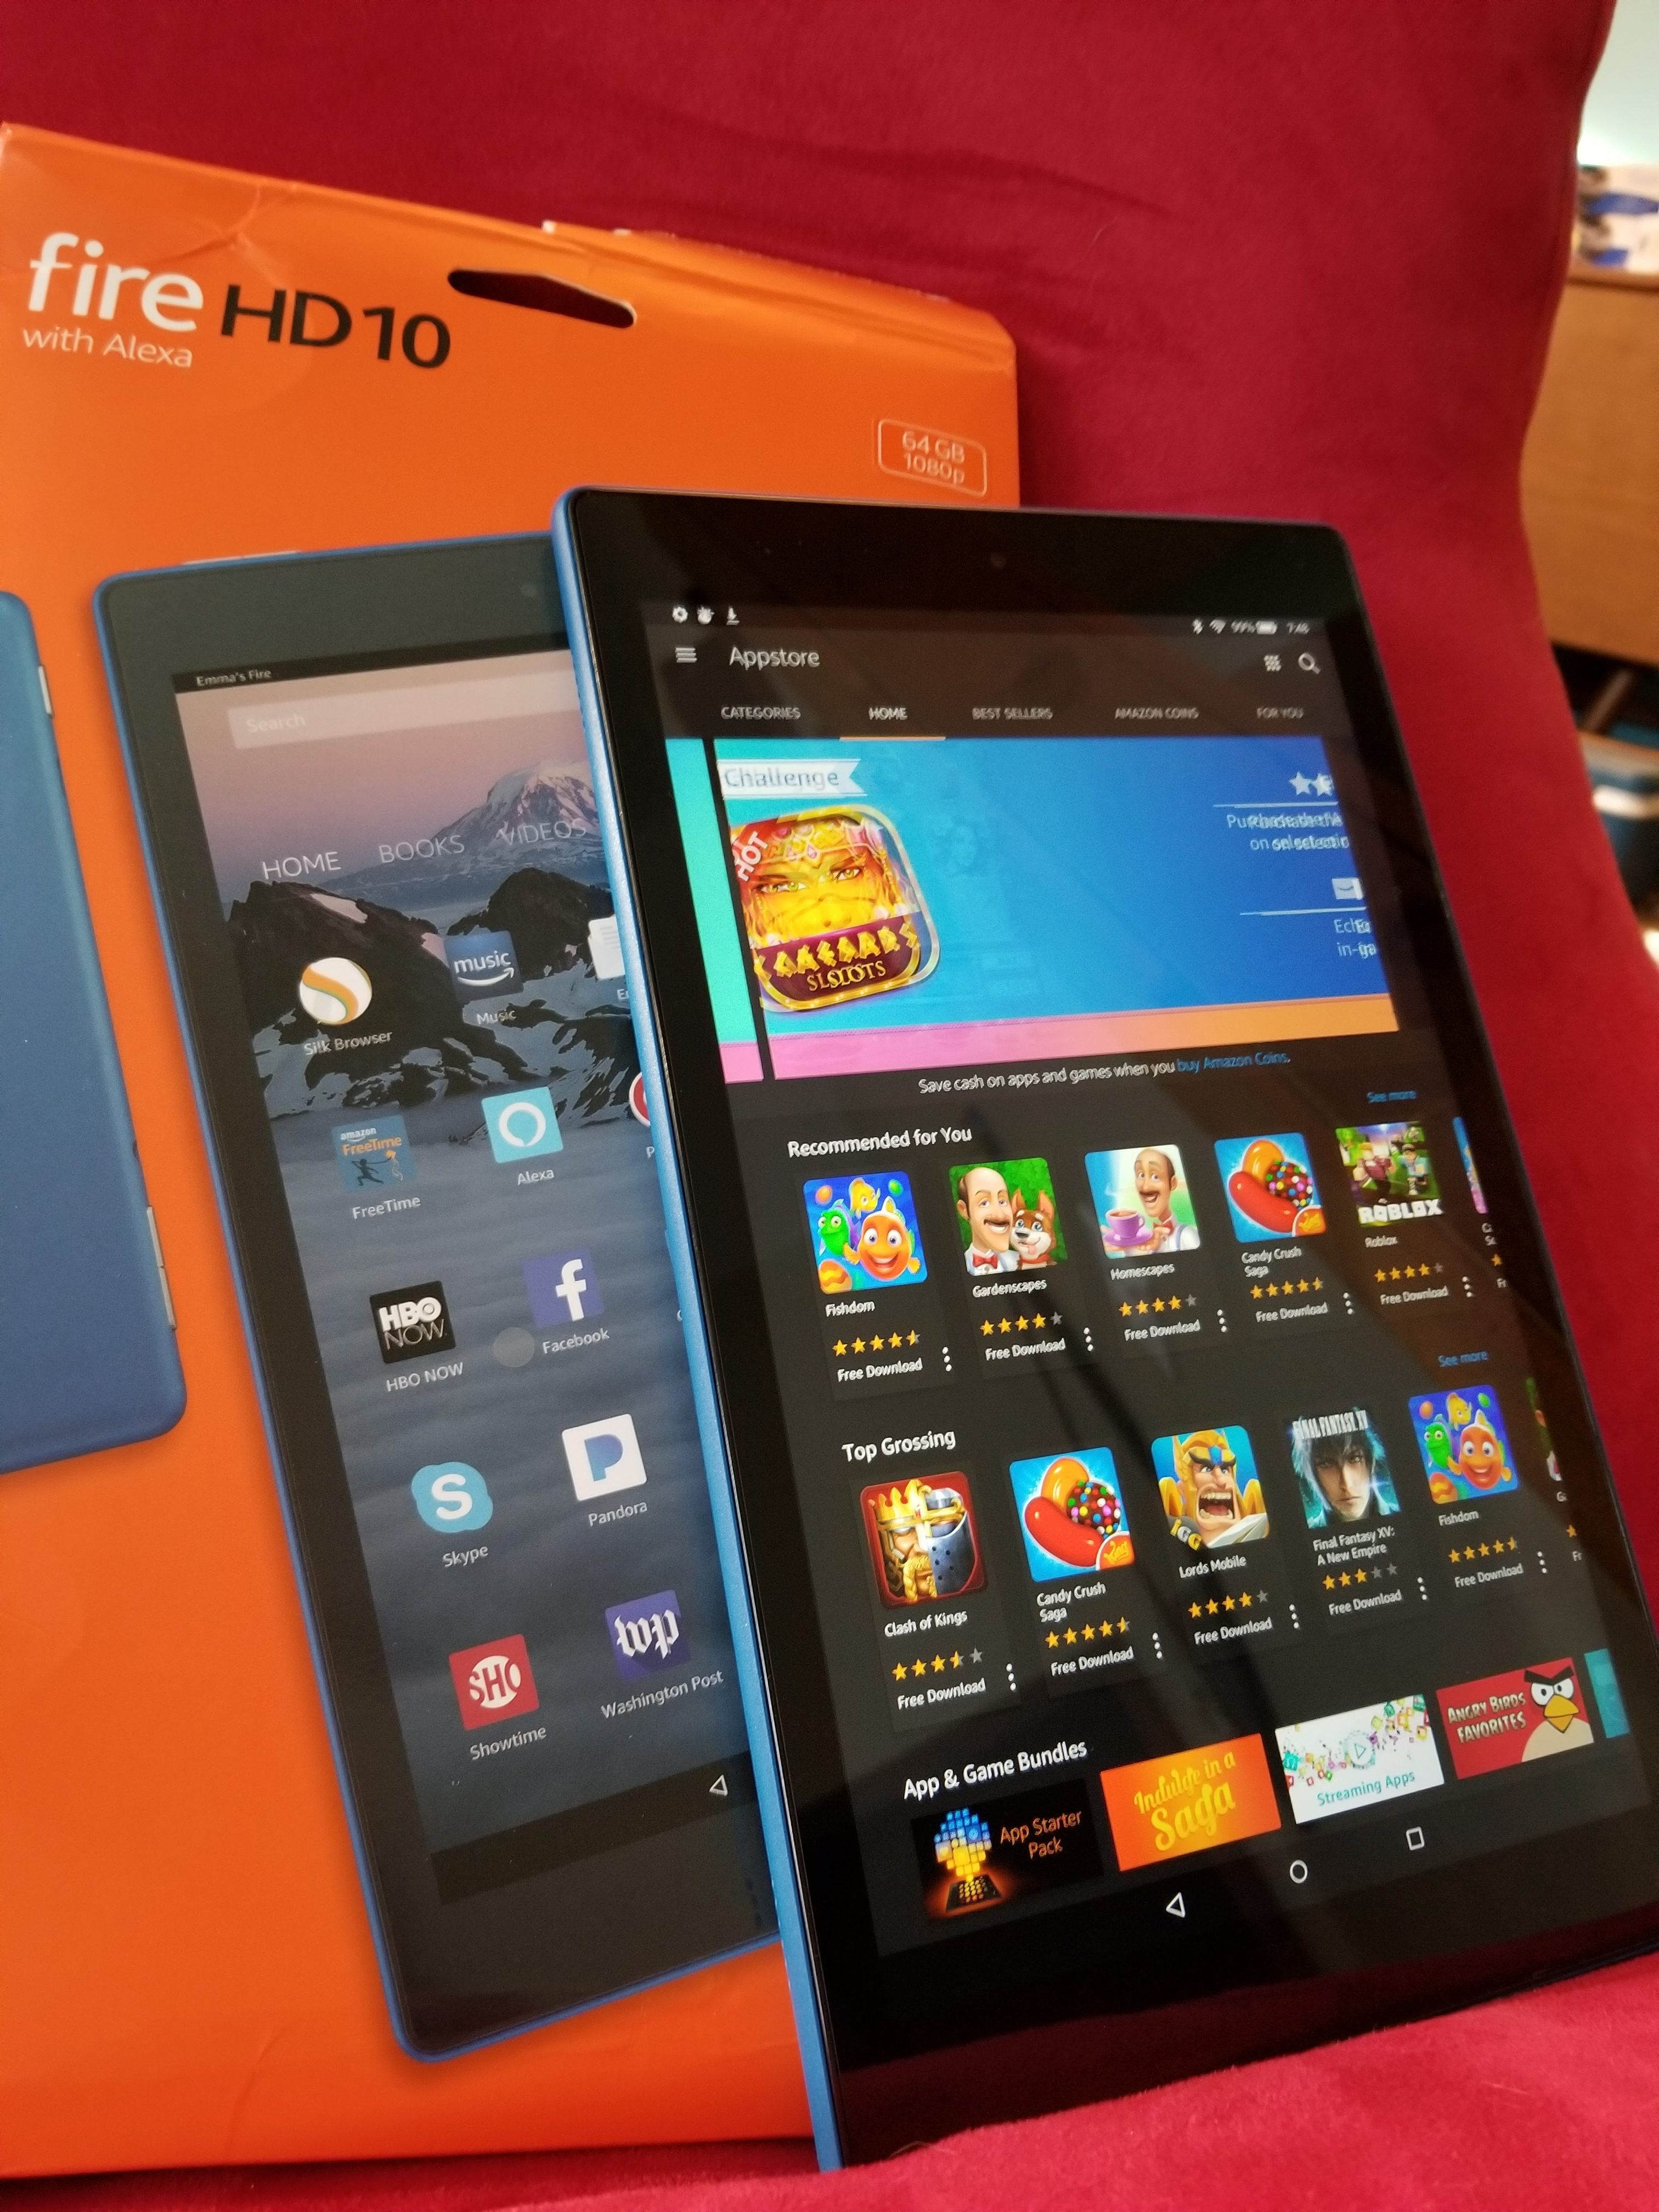 Amazon Fire HD 10 Review: Beautiful Media Tablet For Prime